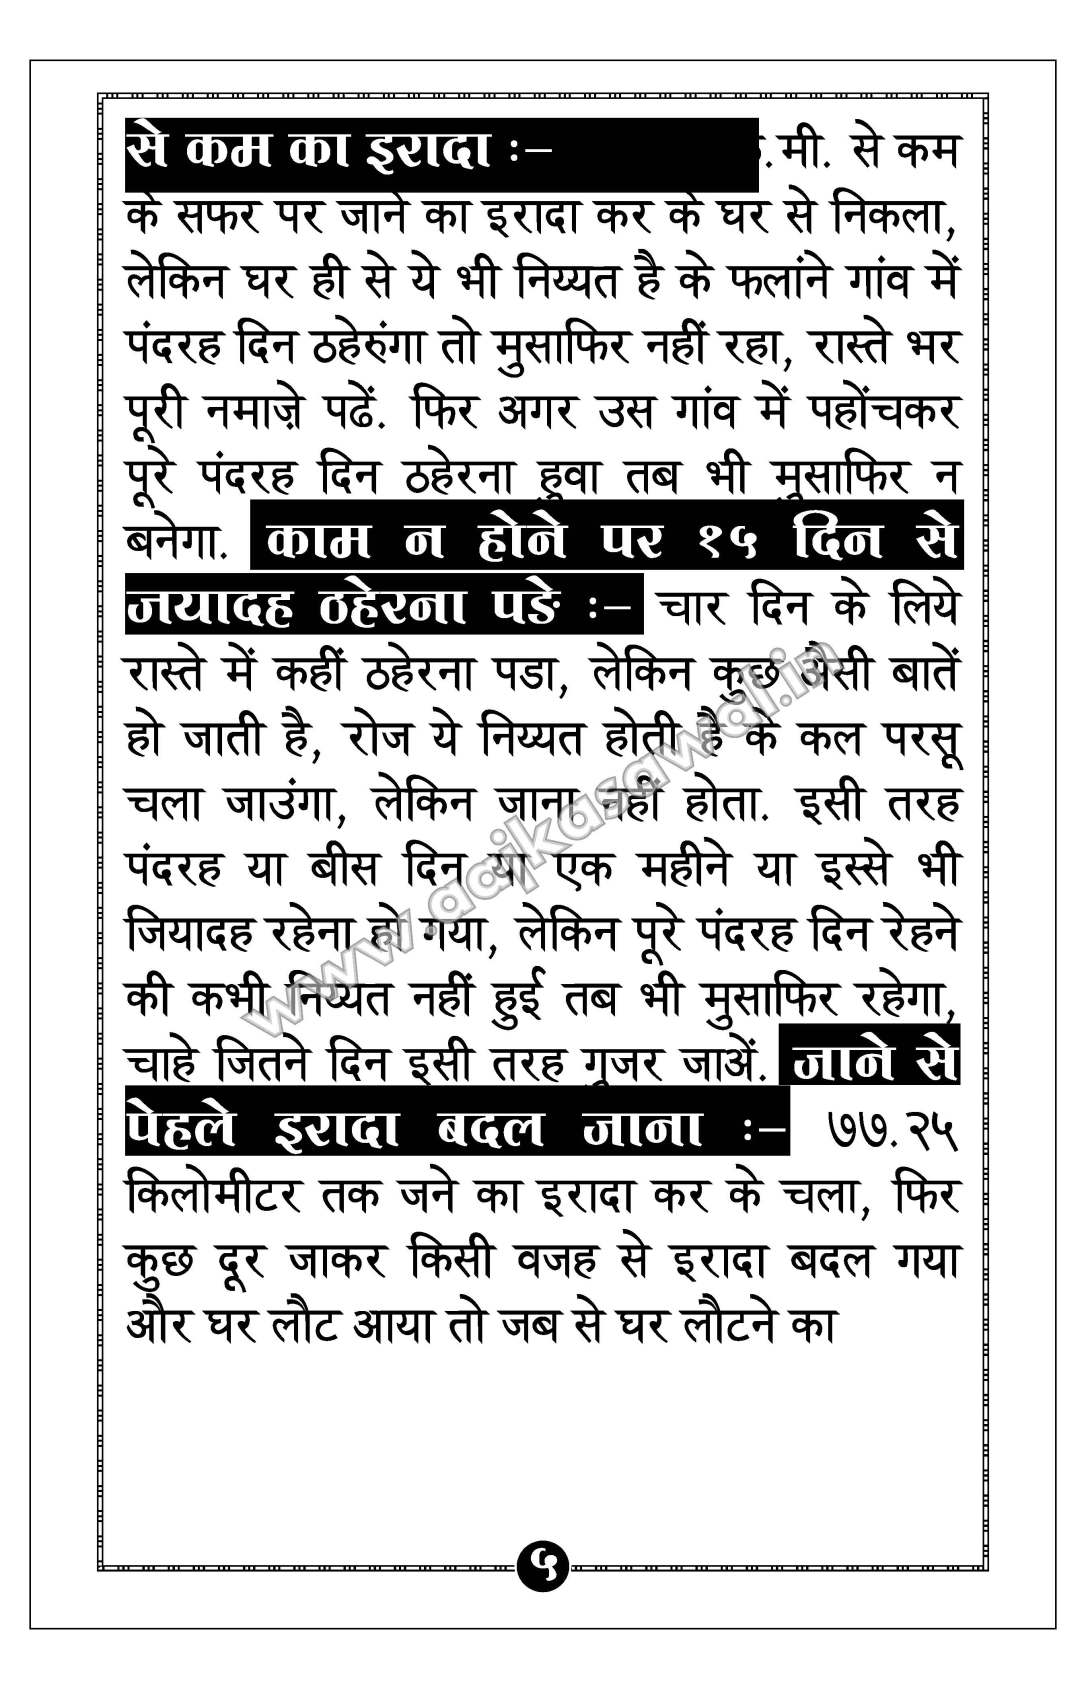 musafir-ki-namaz-hindi_Page_5